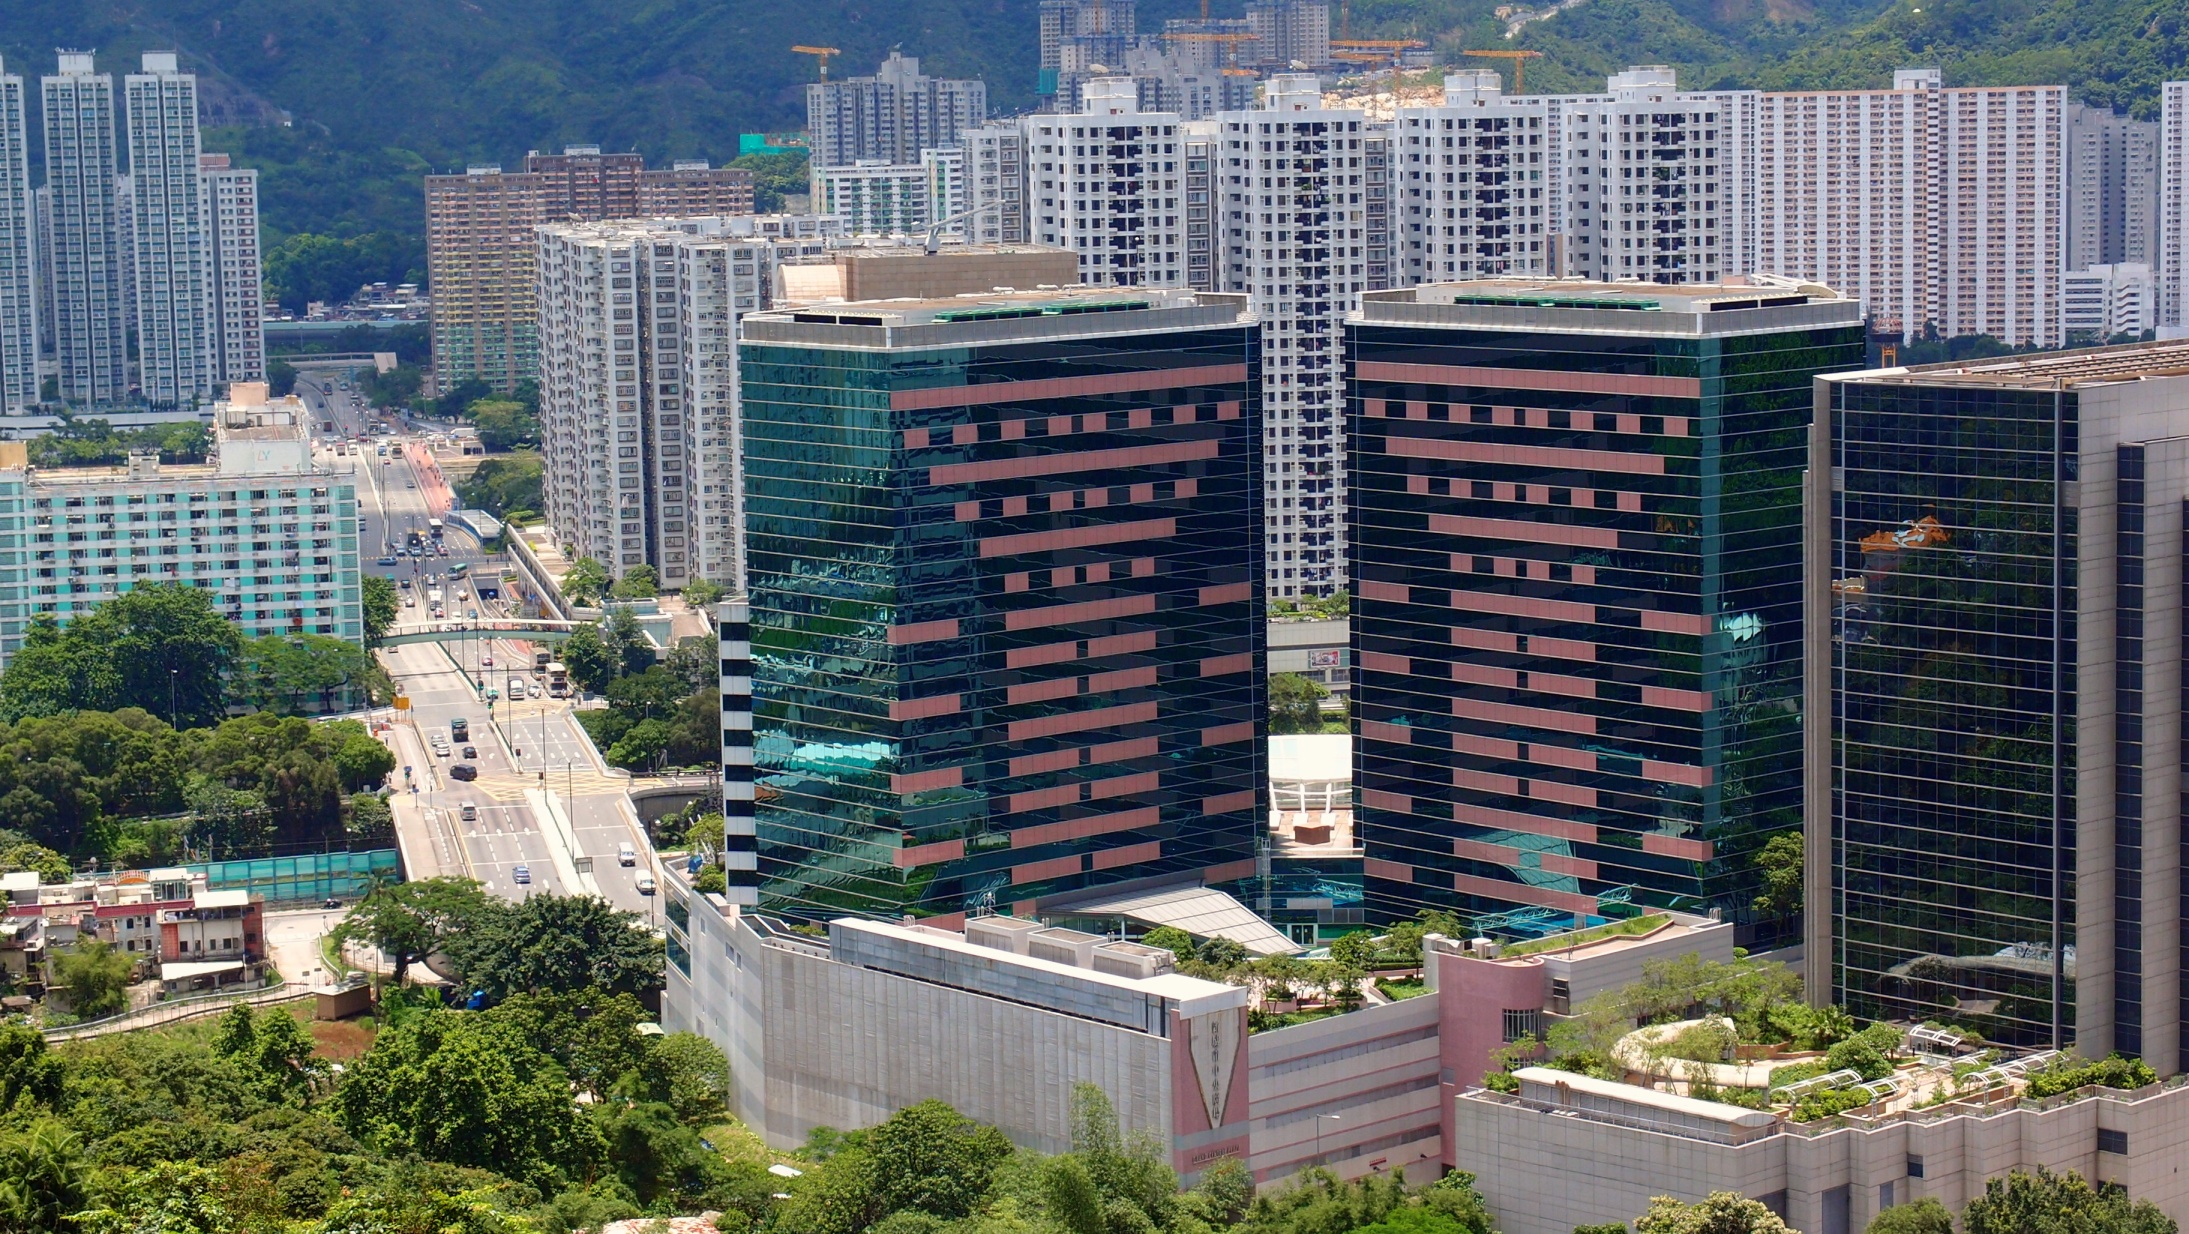 Another great view of Shatin